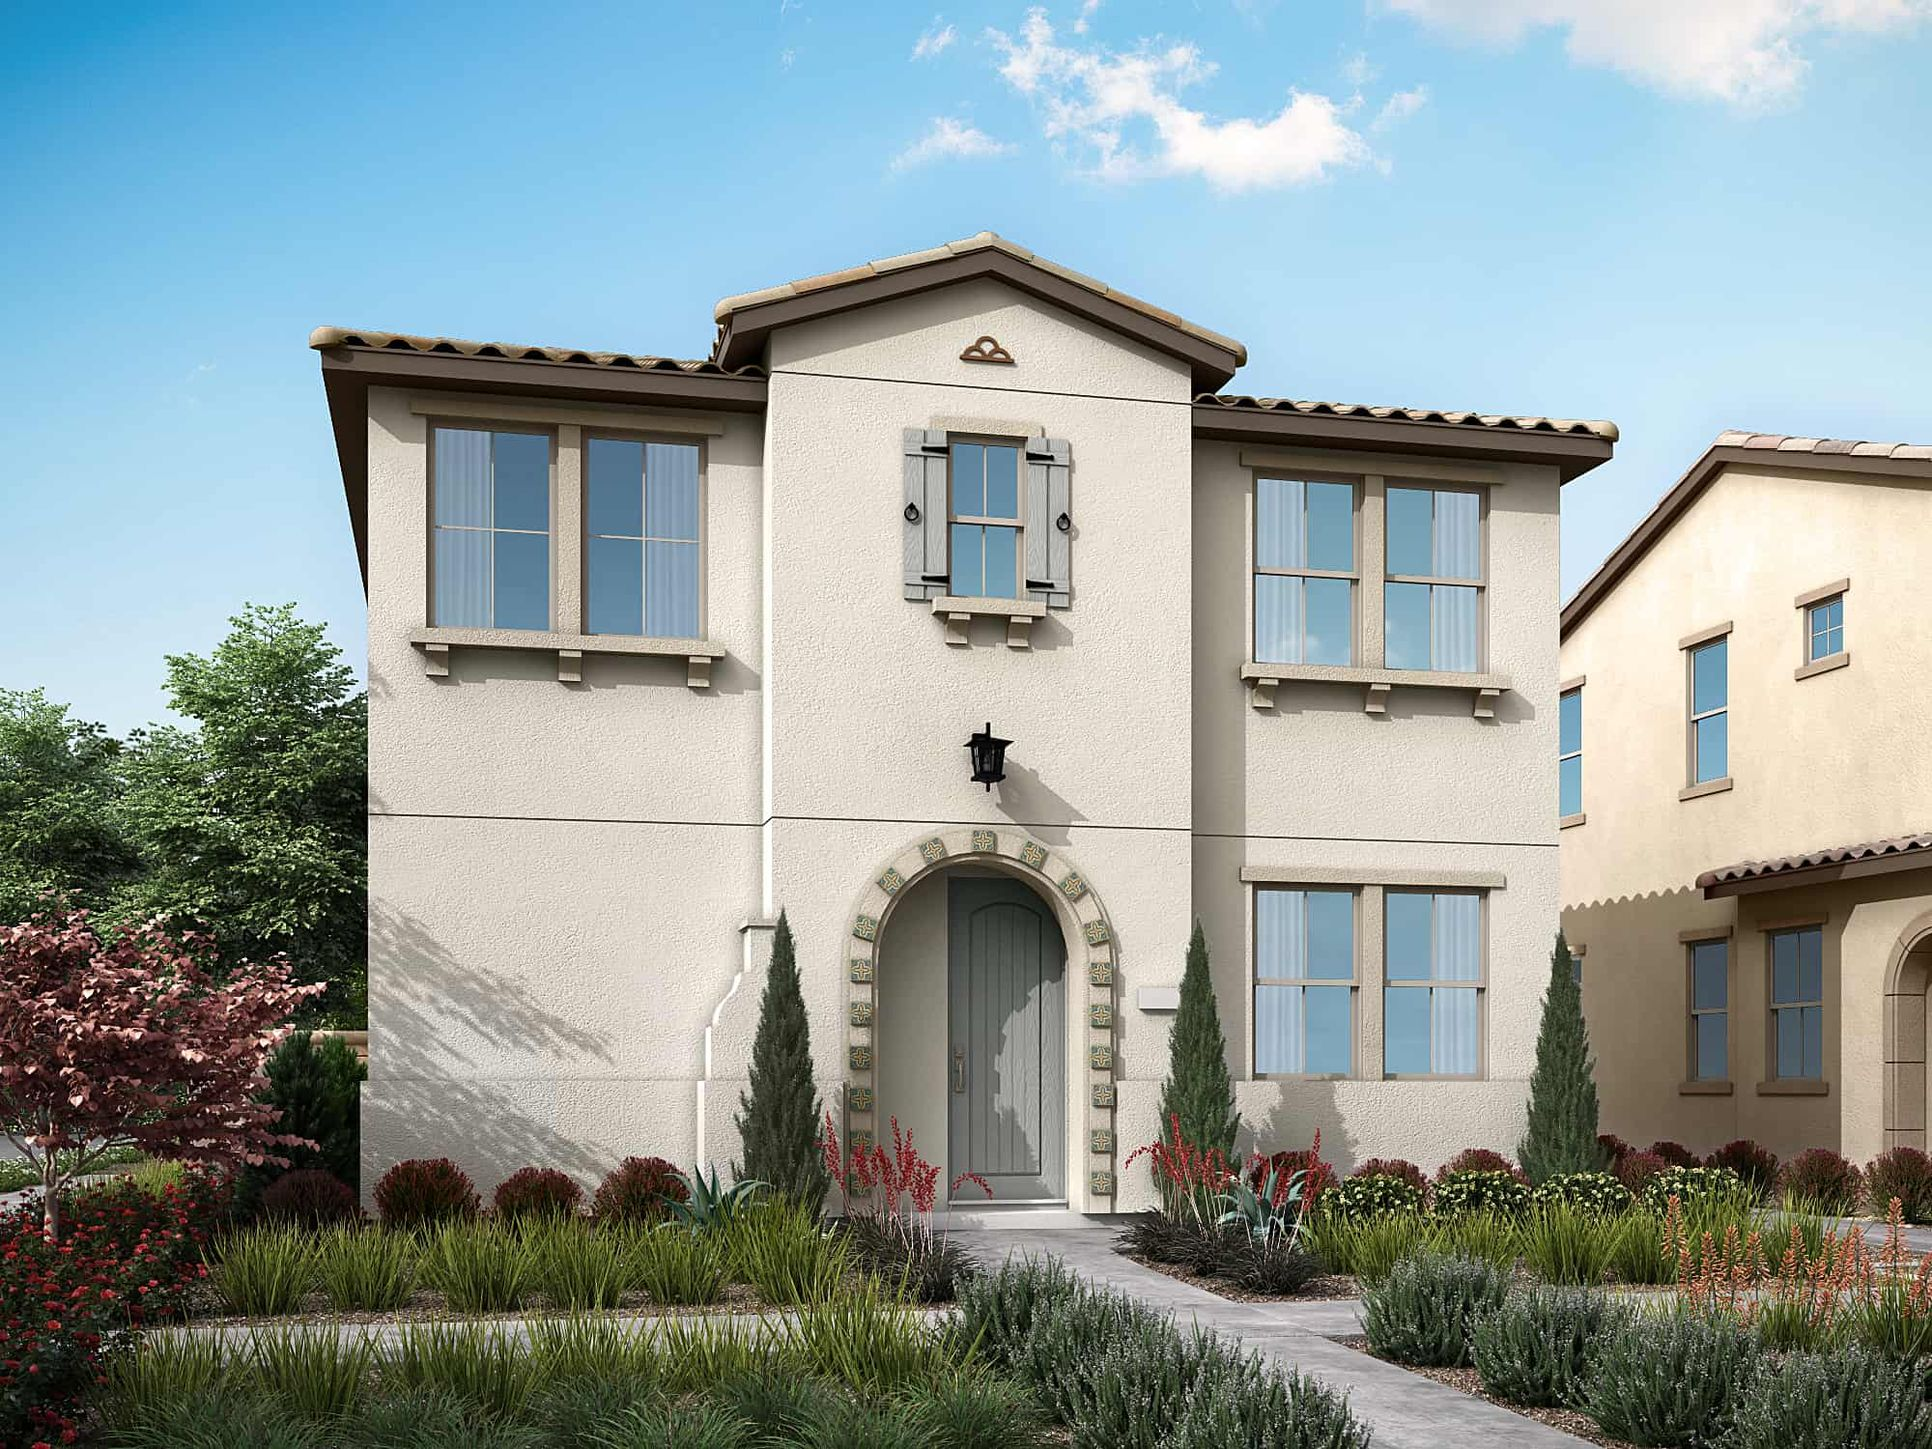 Plan 3A:Spanish Colonial Exterior Style | Preliminary Rendering